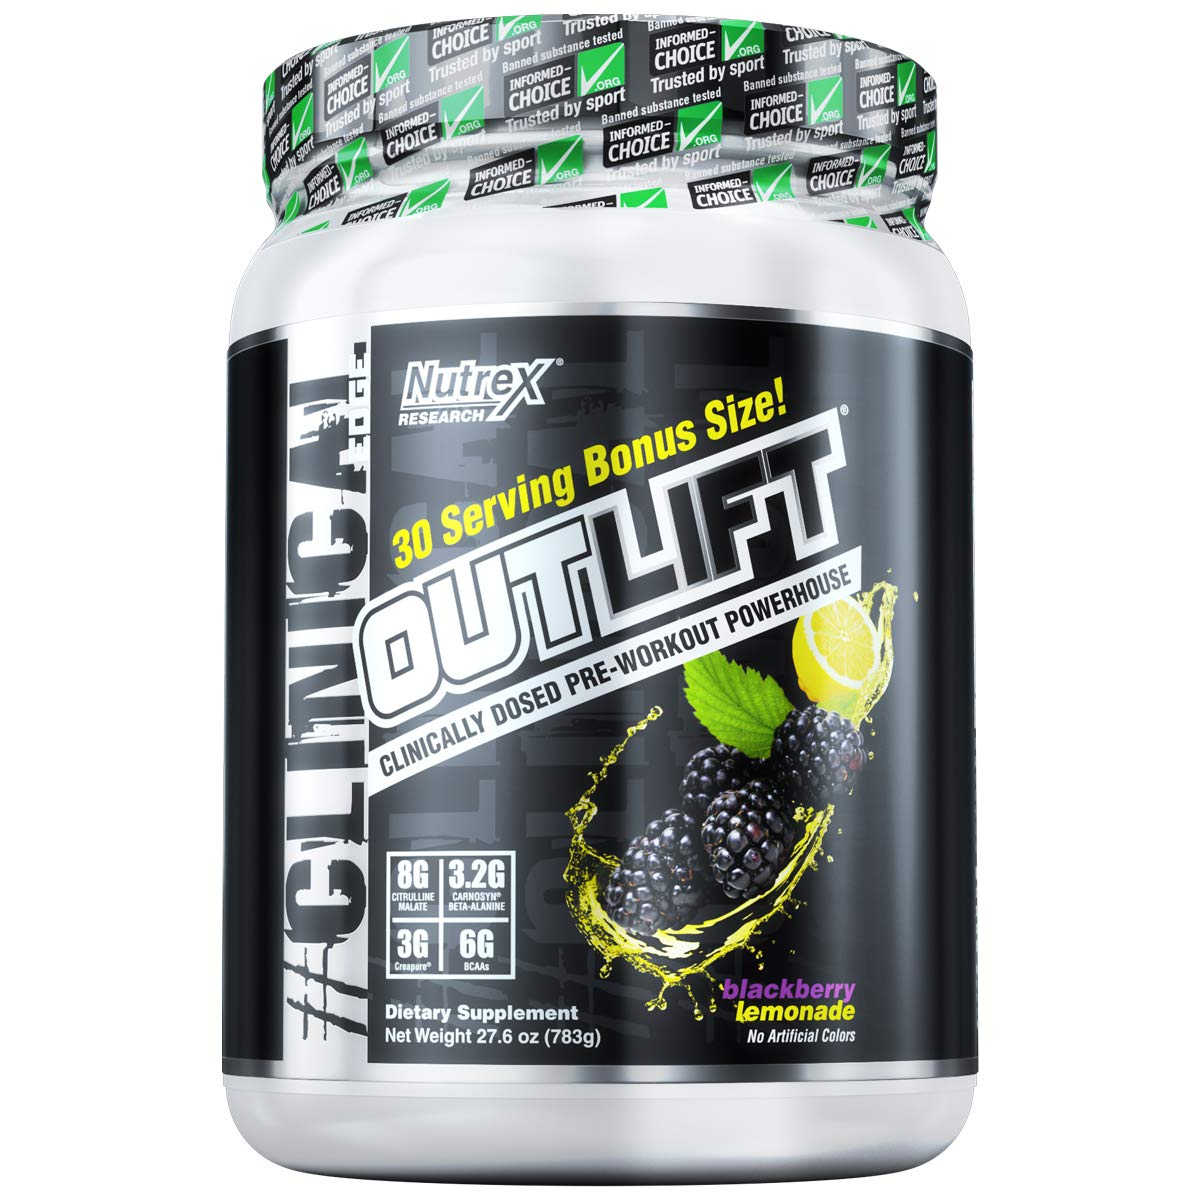 Nutrex Research Oulift Bonus Size Clinically Dosed Pre-Workout Powerhouse, Citrulline, BCAA, Creatine, Beta-Alanine, Taurine, Banned Substance Free BlackBerry Lemonade 30 Servings